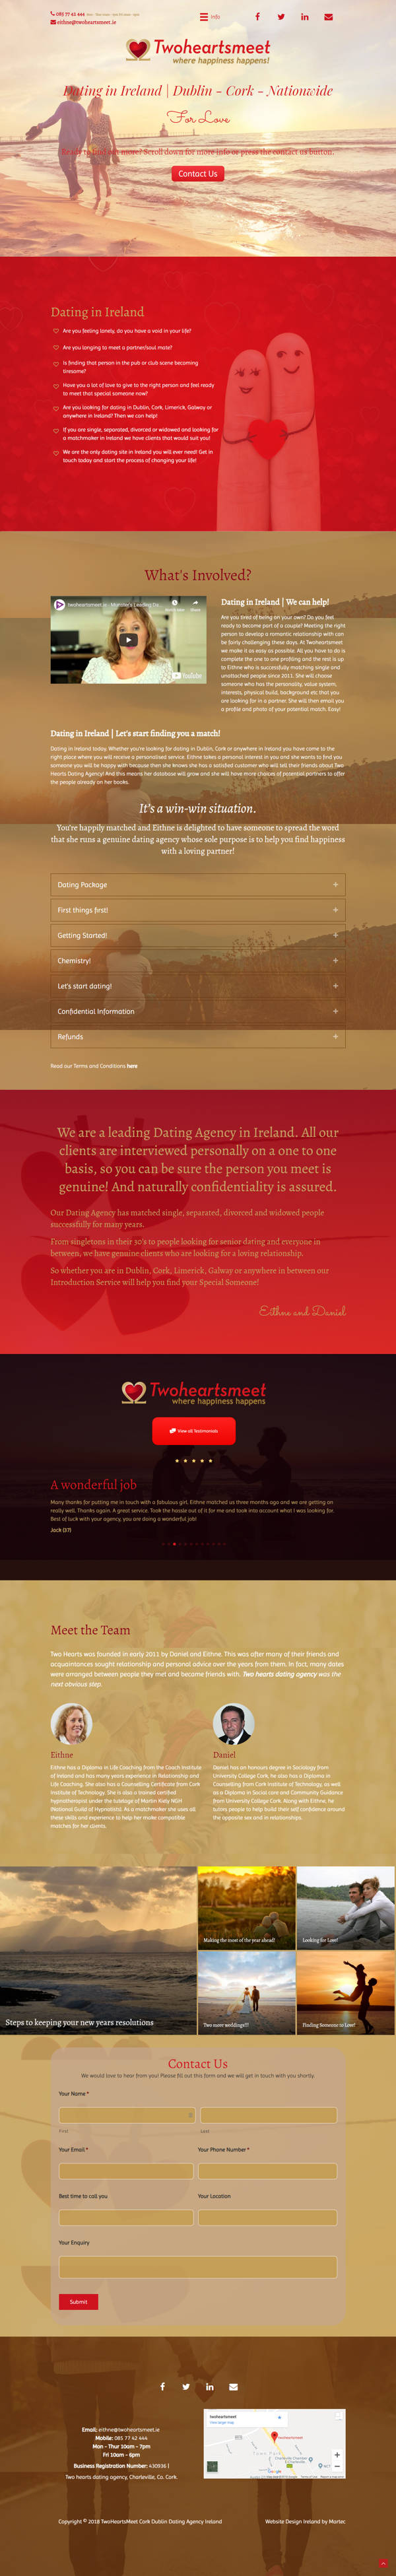 Dublin Dating Service